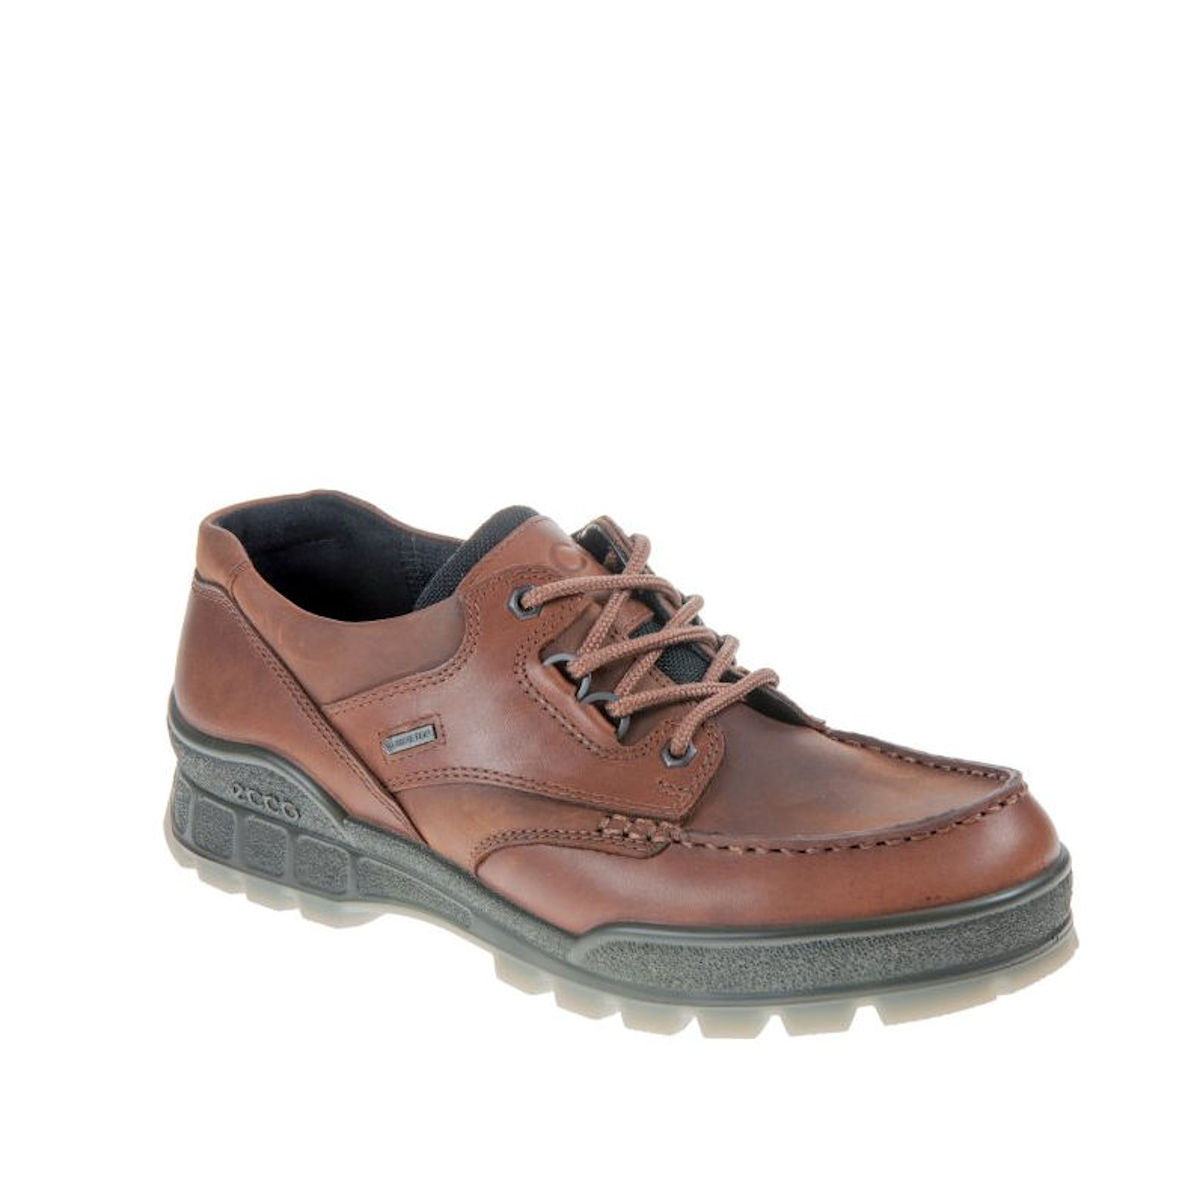 Ecco Track 25 Gore-Tex Lo Bison Walking Shoe